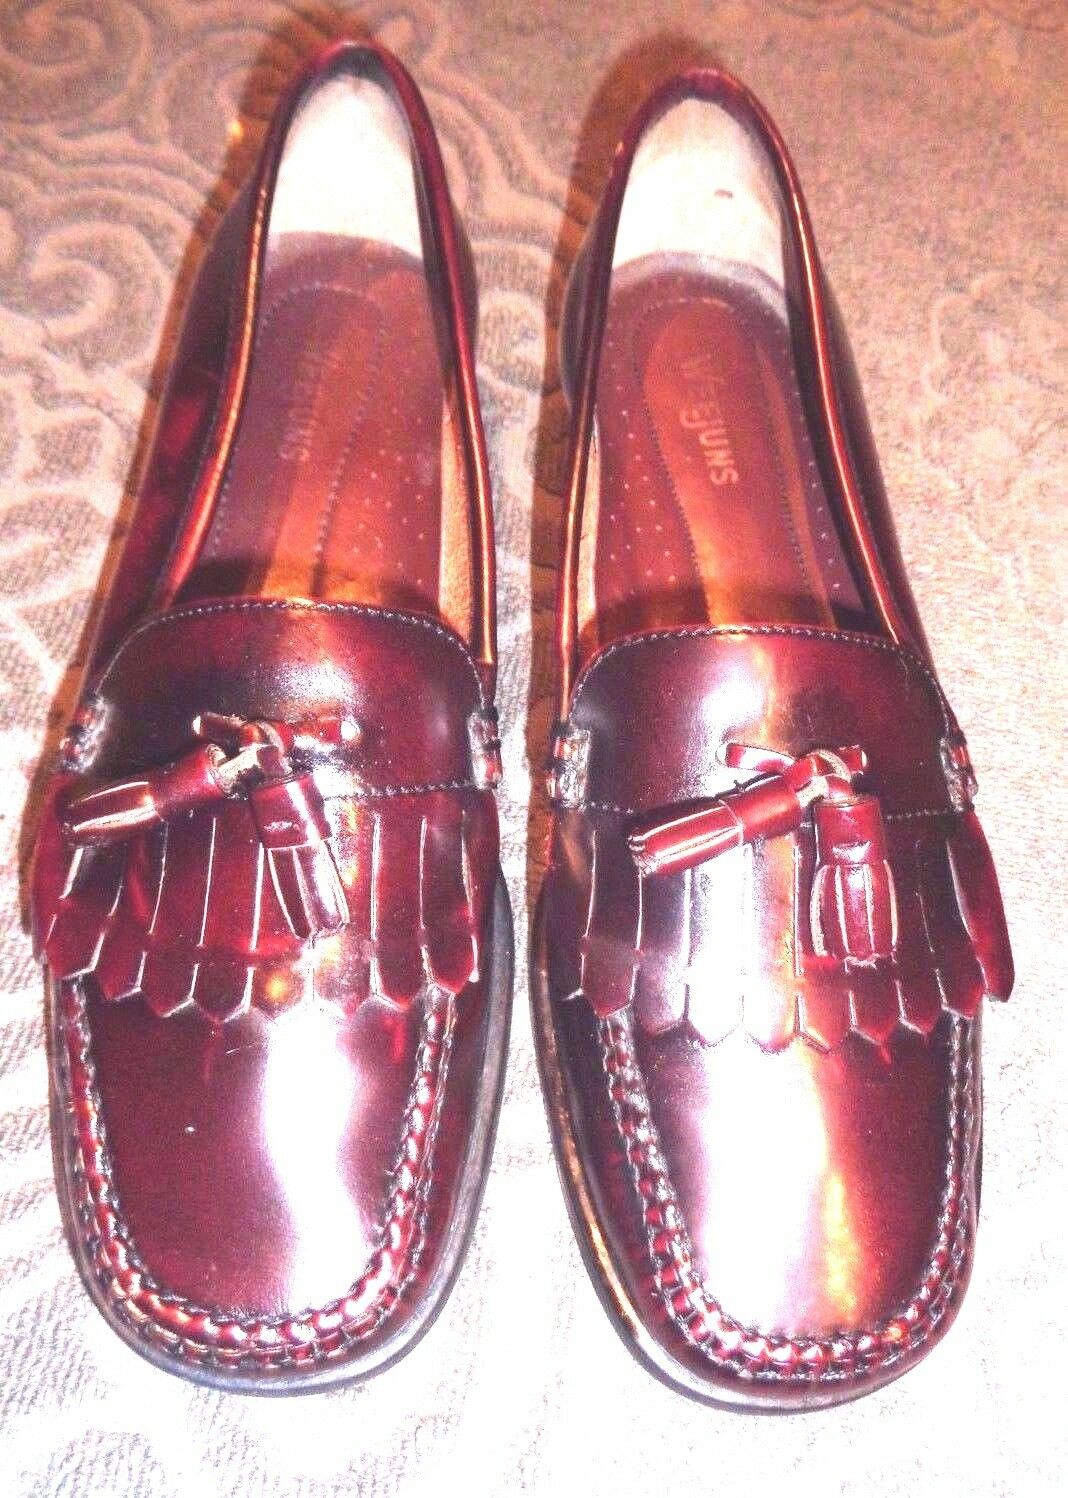 AUTHENTIC BASS BLOOD WEEJUNS OX BLOOD BASS  WINNY TASSEL LOAFERS SHOES 8.5 M ecc622